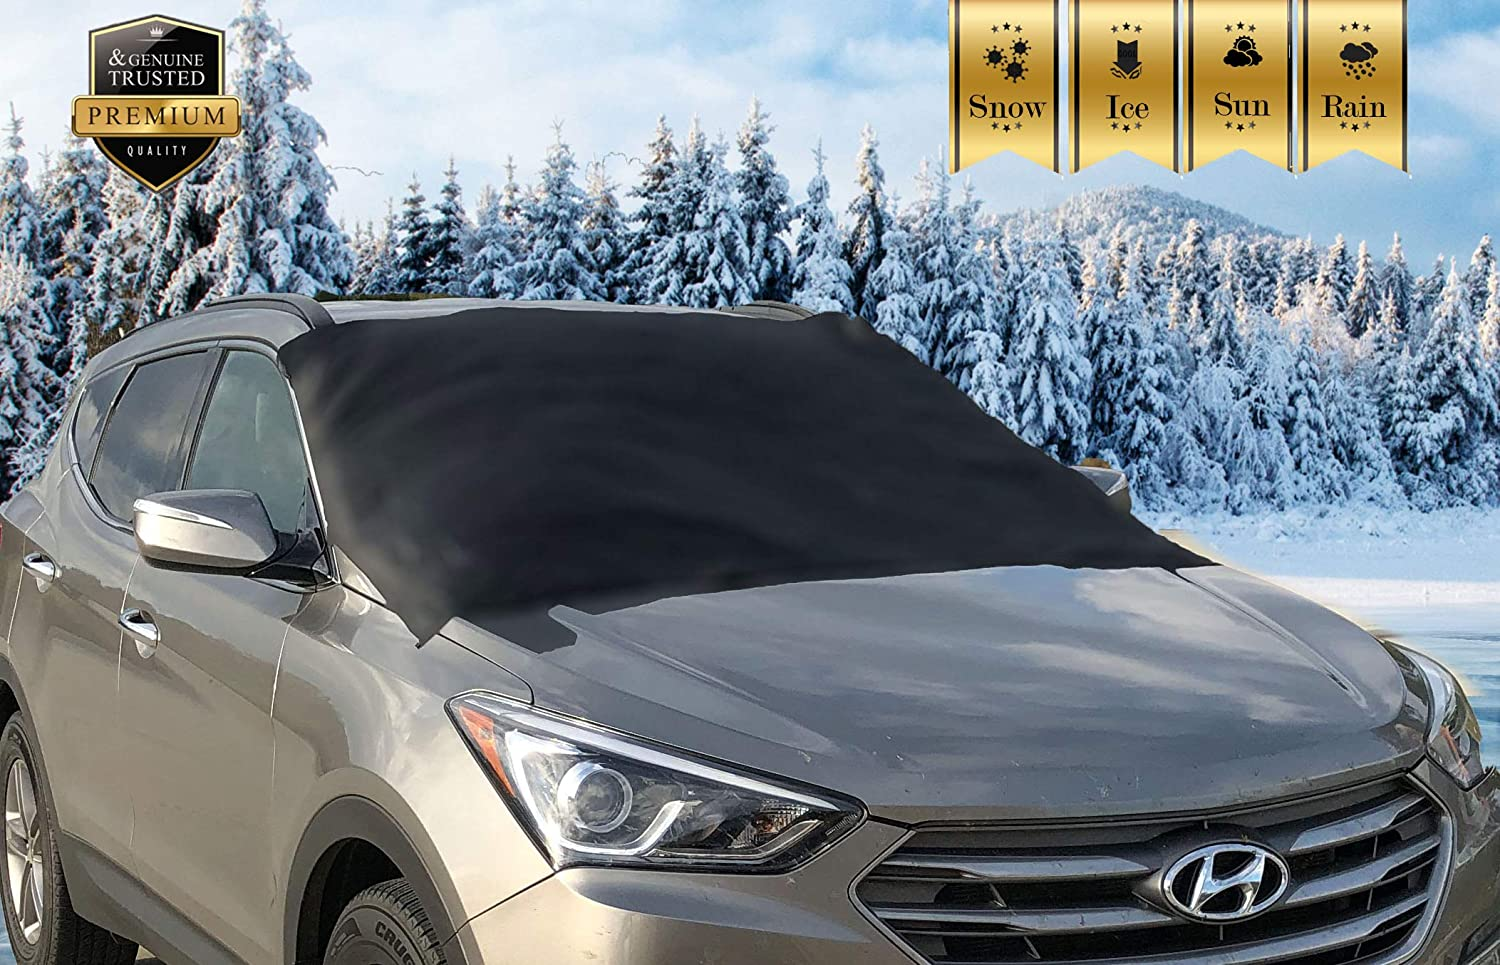 Premium Windshield Snow Cover for All Vehicles, Covers Wipers, Ice, Frost Guard, No More Scraping, Door Flaps Windproof Magnetic Edges Apex Automotive pw-carover